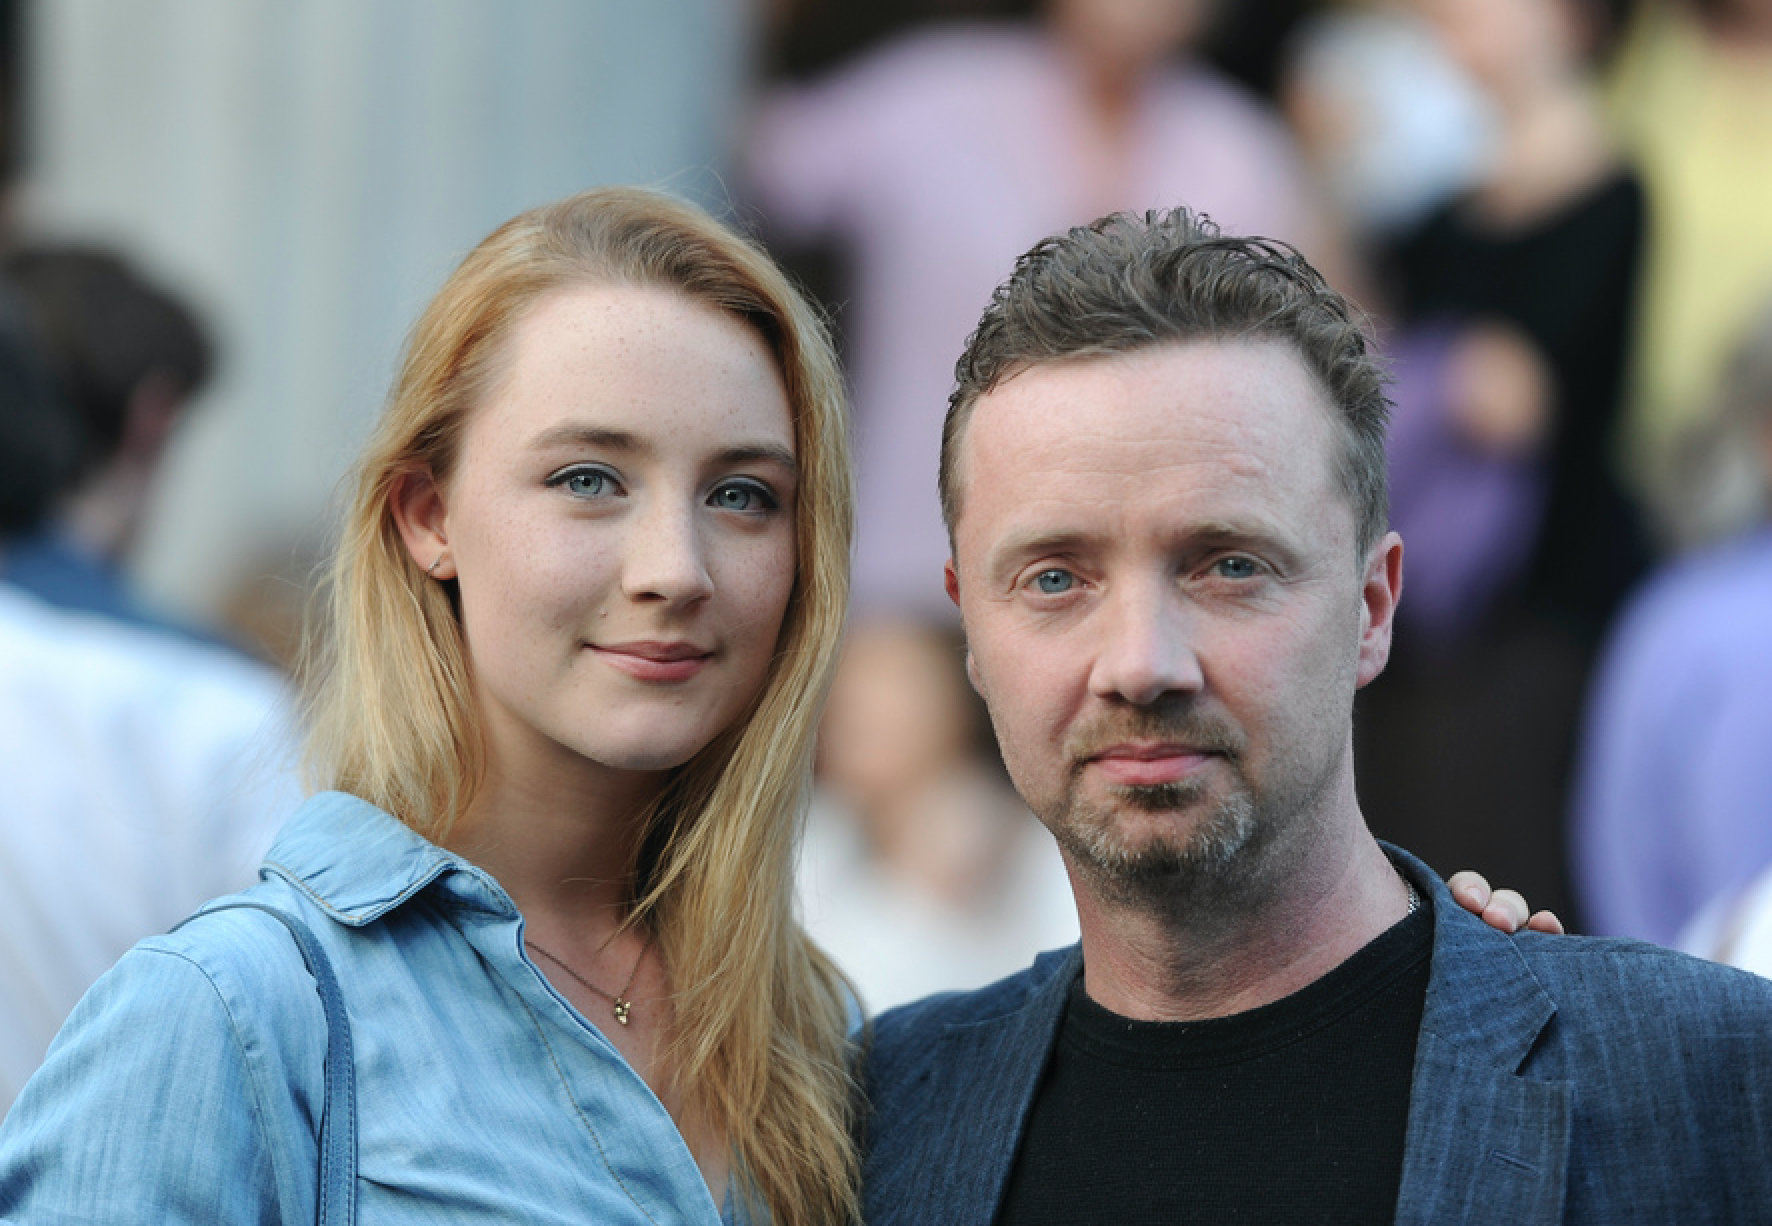 Saoirse Ronan's dad is joining a popular soap later this year and we can't wait